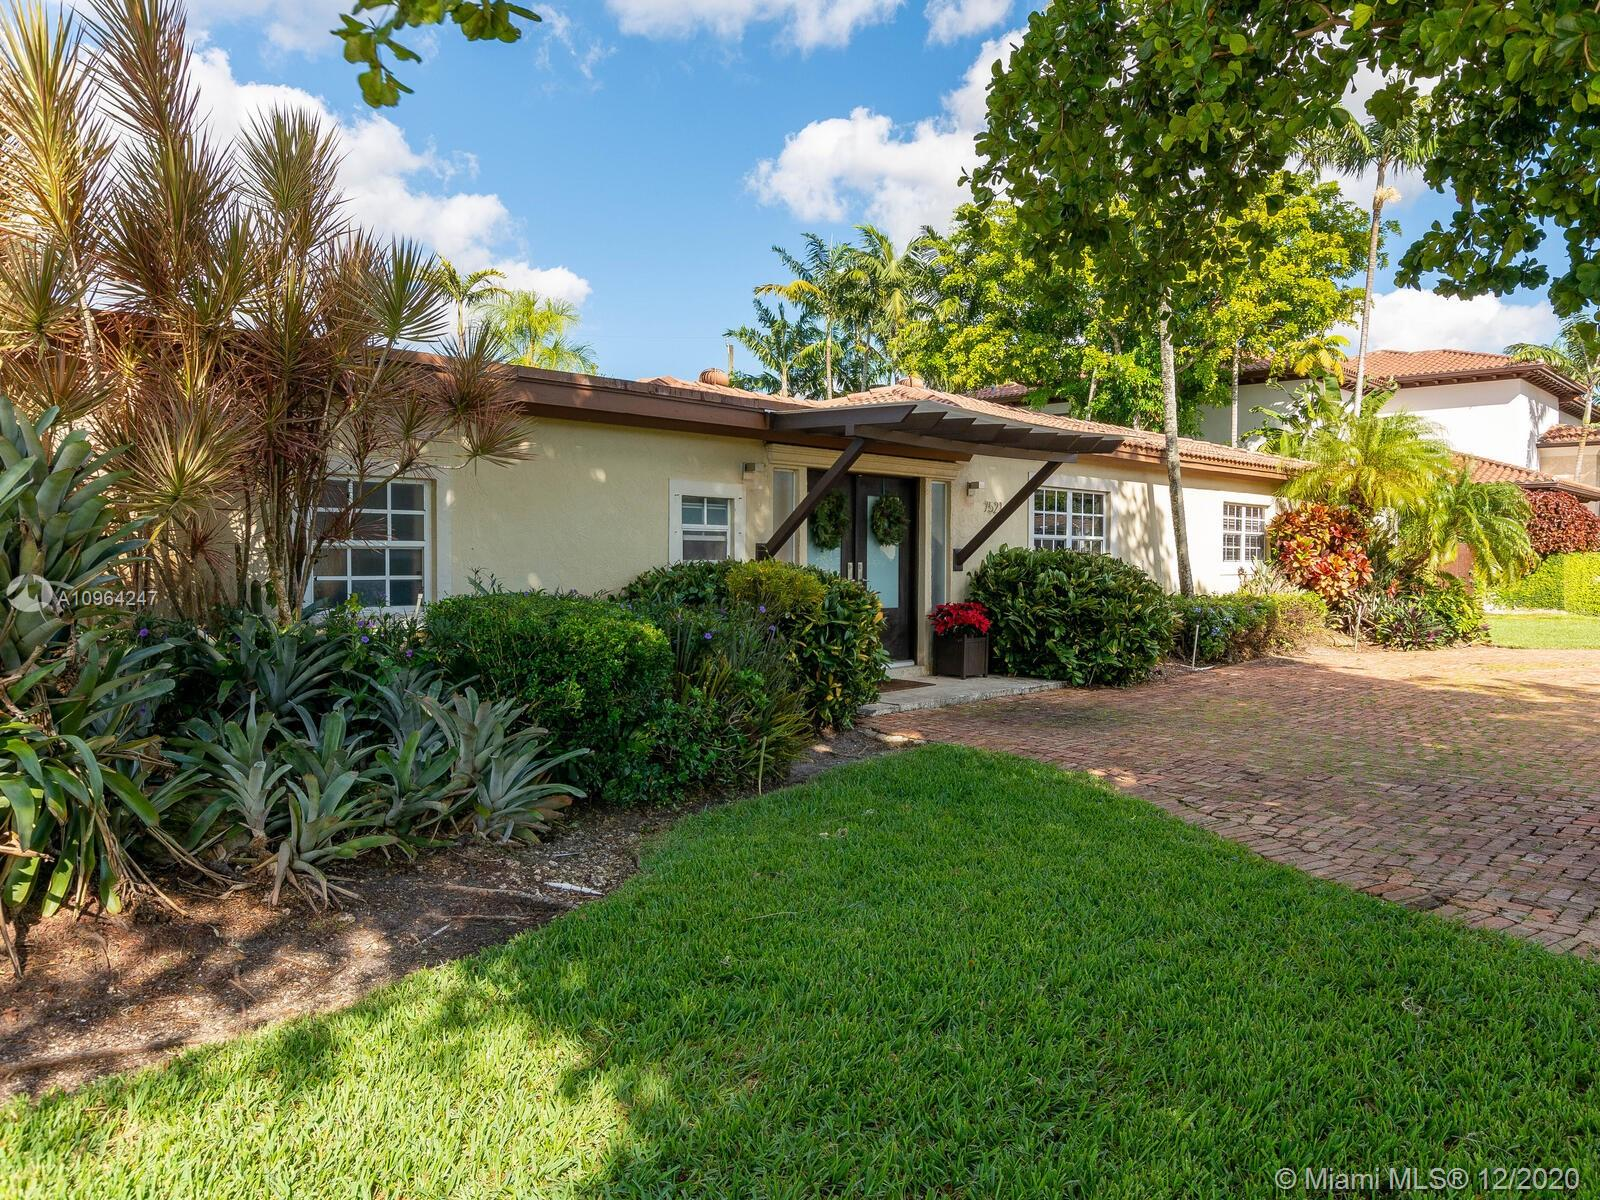 Make this Tropical Oasis your sanctuary! Entertain comfortably in the beautifully landscaped backyard with a custom made pool and drinking margaritas under the Tiki Bar. This perfect family 5 bedroom 3 baths home is completely renovated  and nestled in a quiet street of Glenvar Heights. Excellent Location near UM, International Airport, Sunset Mall and best school district of Miami.  Among the great features of this property are: Impact windows and doors, Two-zone A/C for maximum cooling, Two separate Chicago-Brick driveway areas for plenty of parking, gourmet kitchen, well sprinkler system and much more.